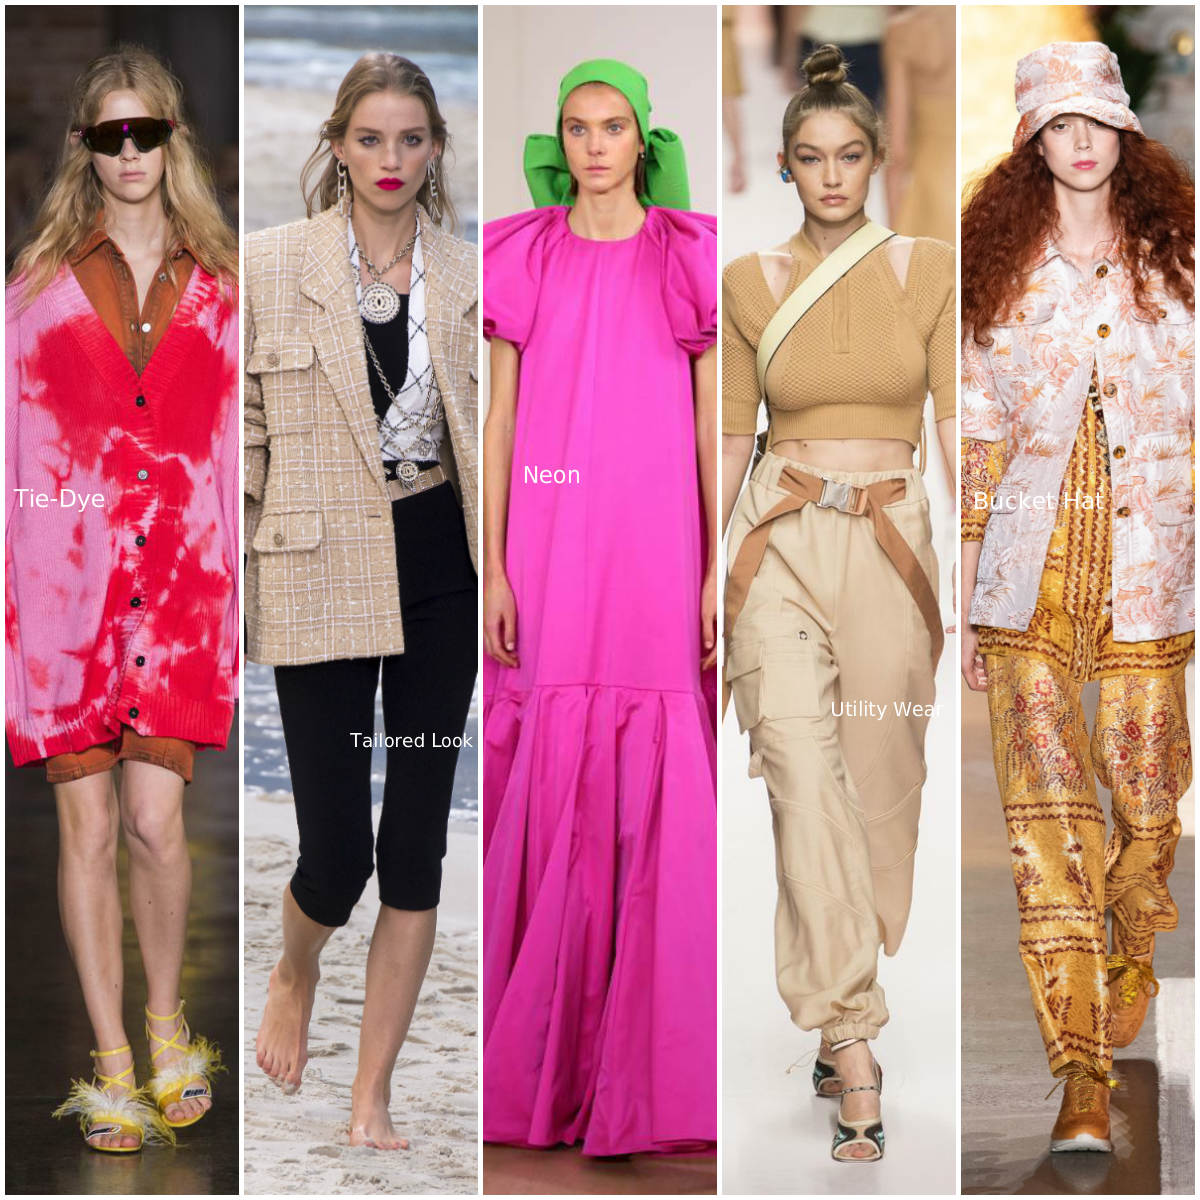 3db09b82 Trends Spring/Summer 2019 (Photos by Indigital.tv and Getty Images) Click  to enlarge